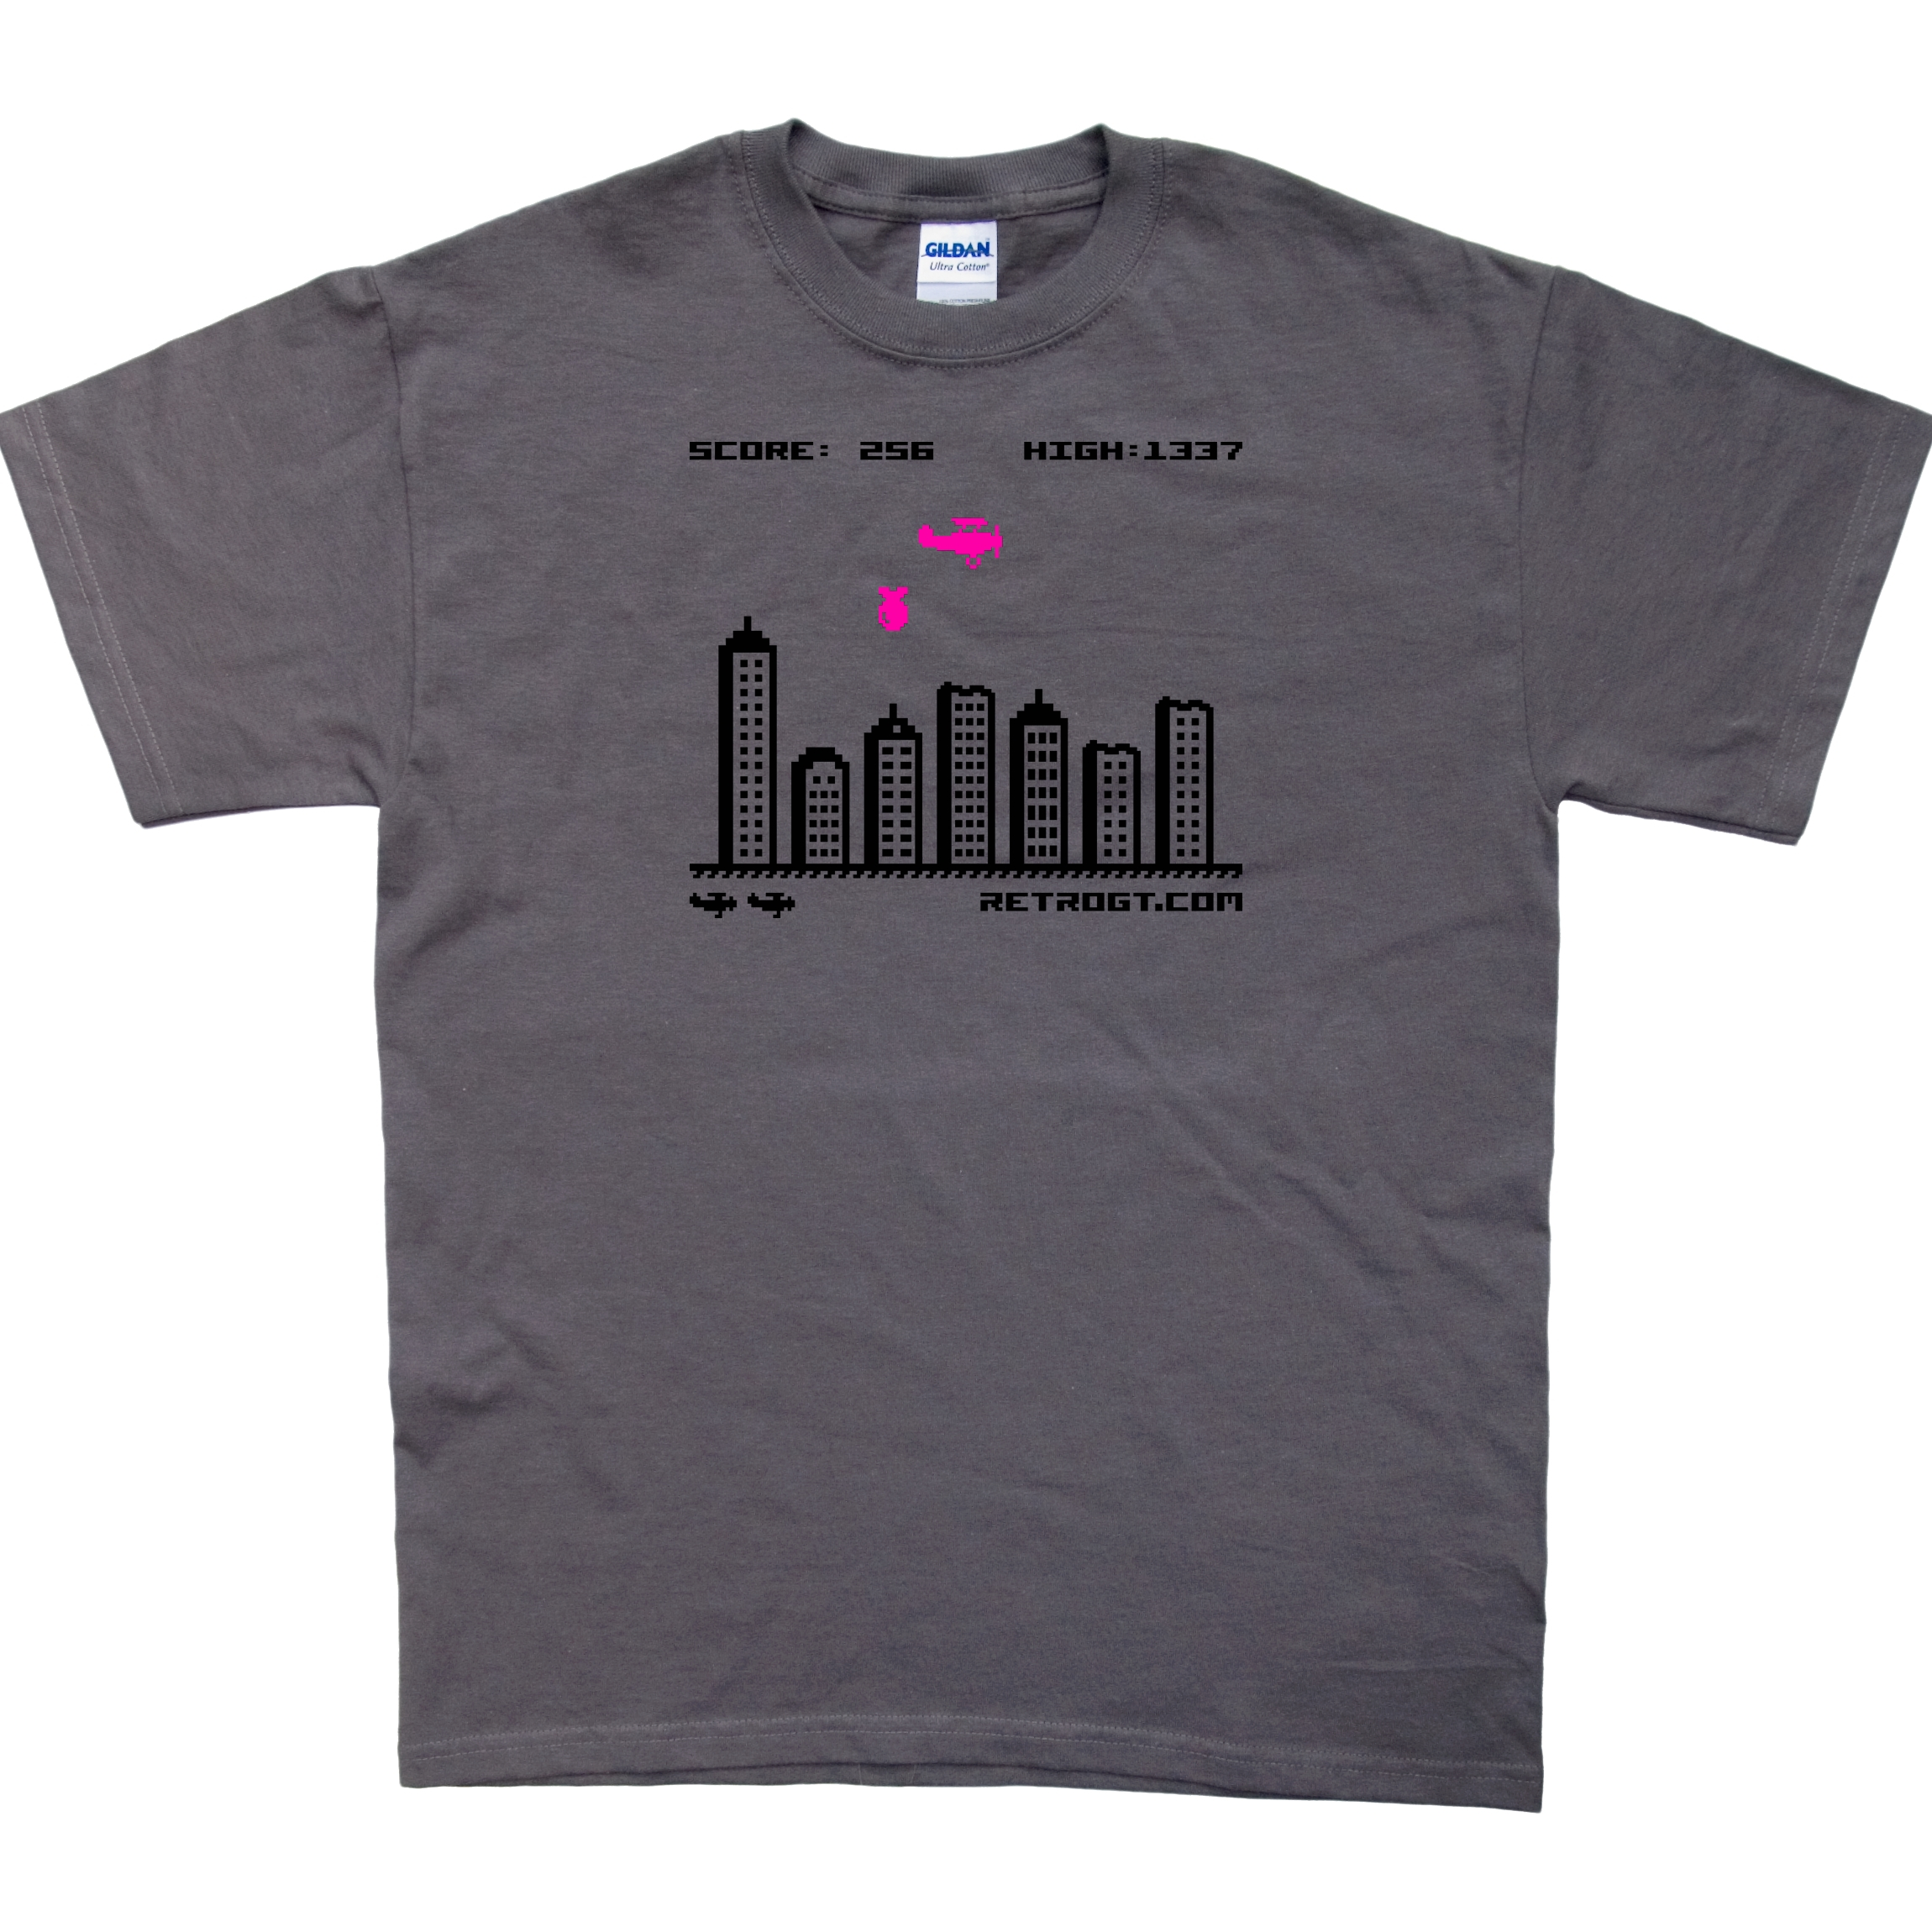 Photograph: City Bomber T-Shirt